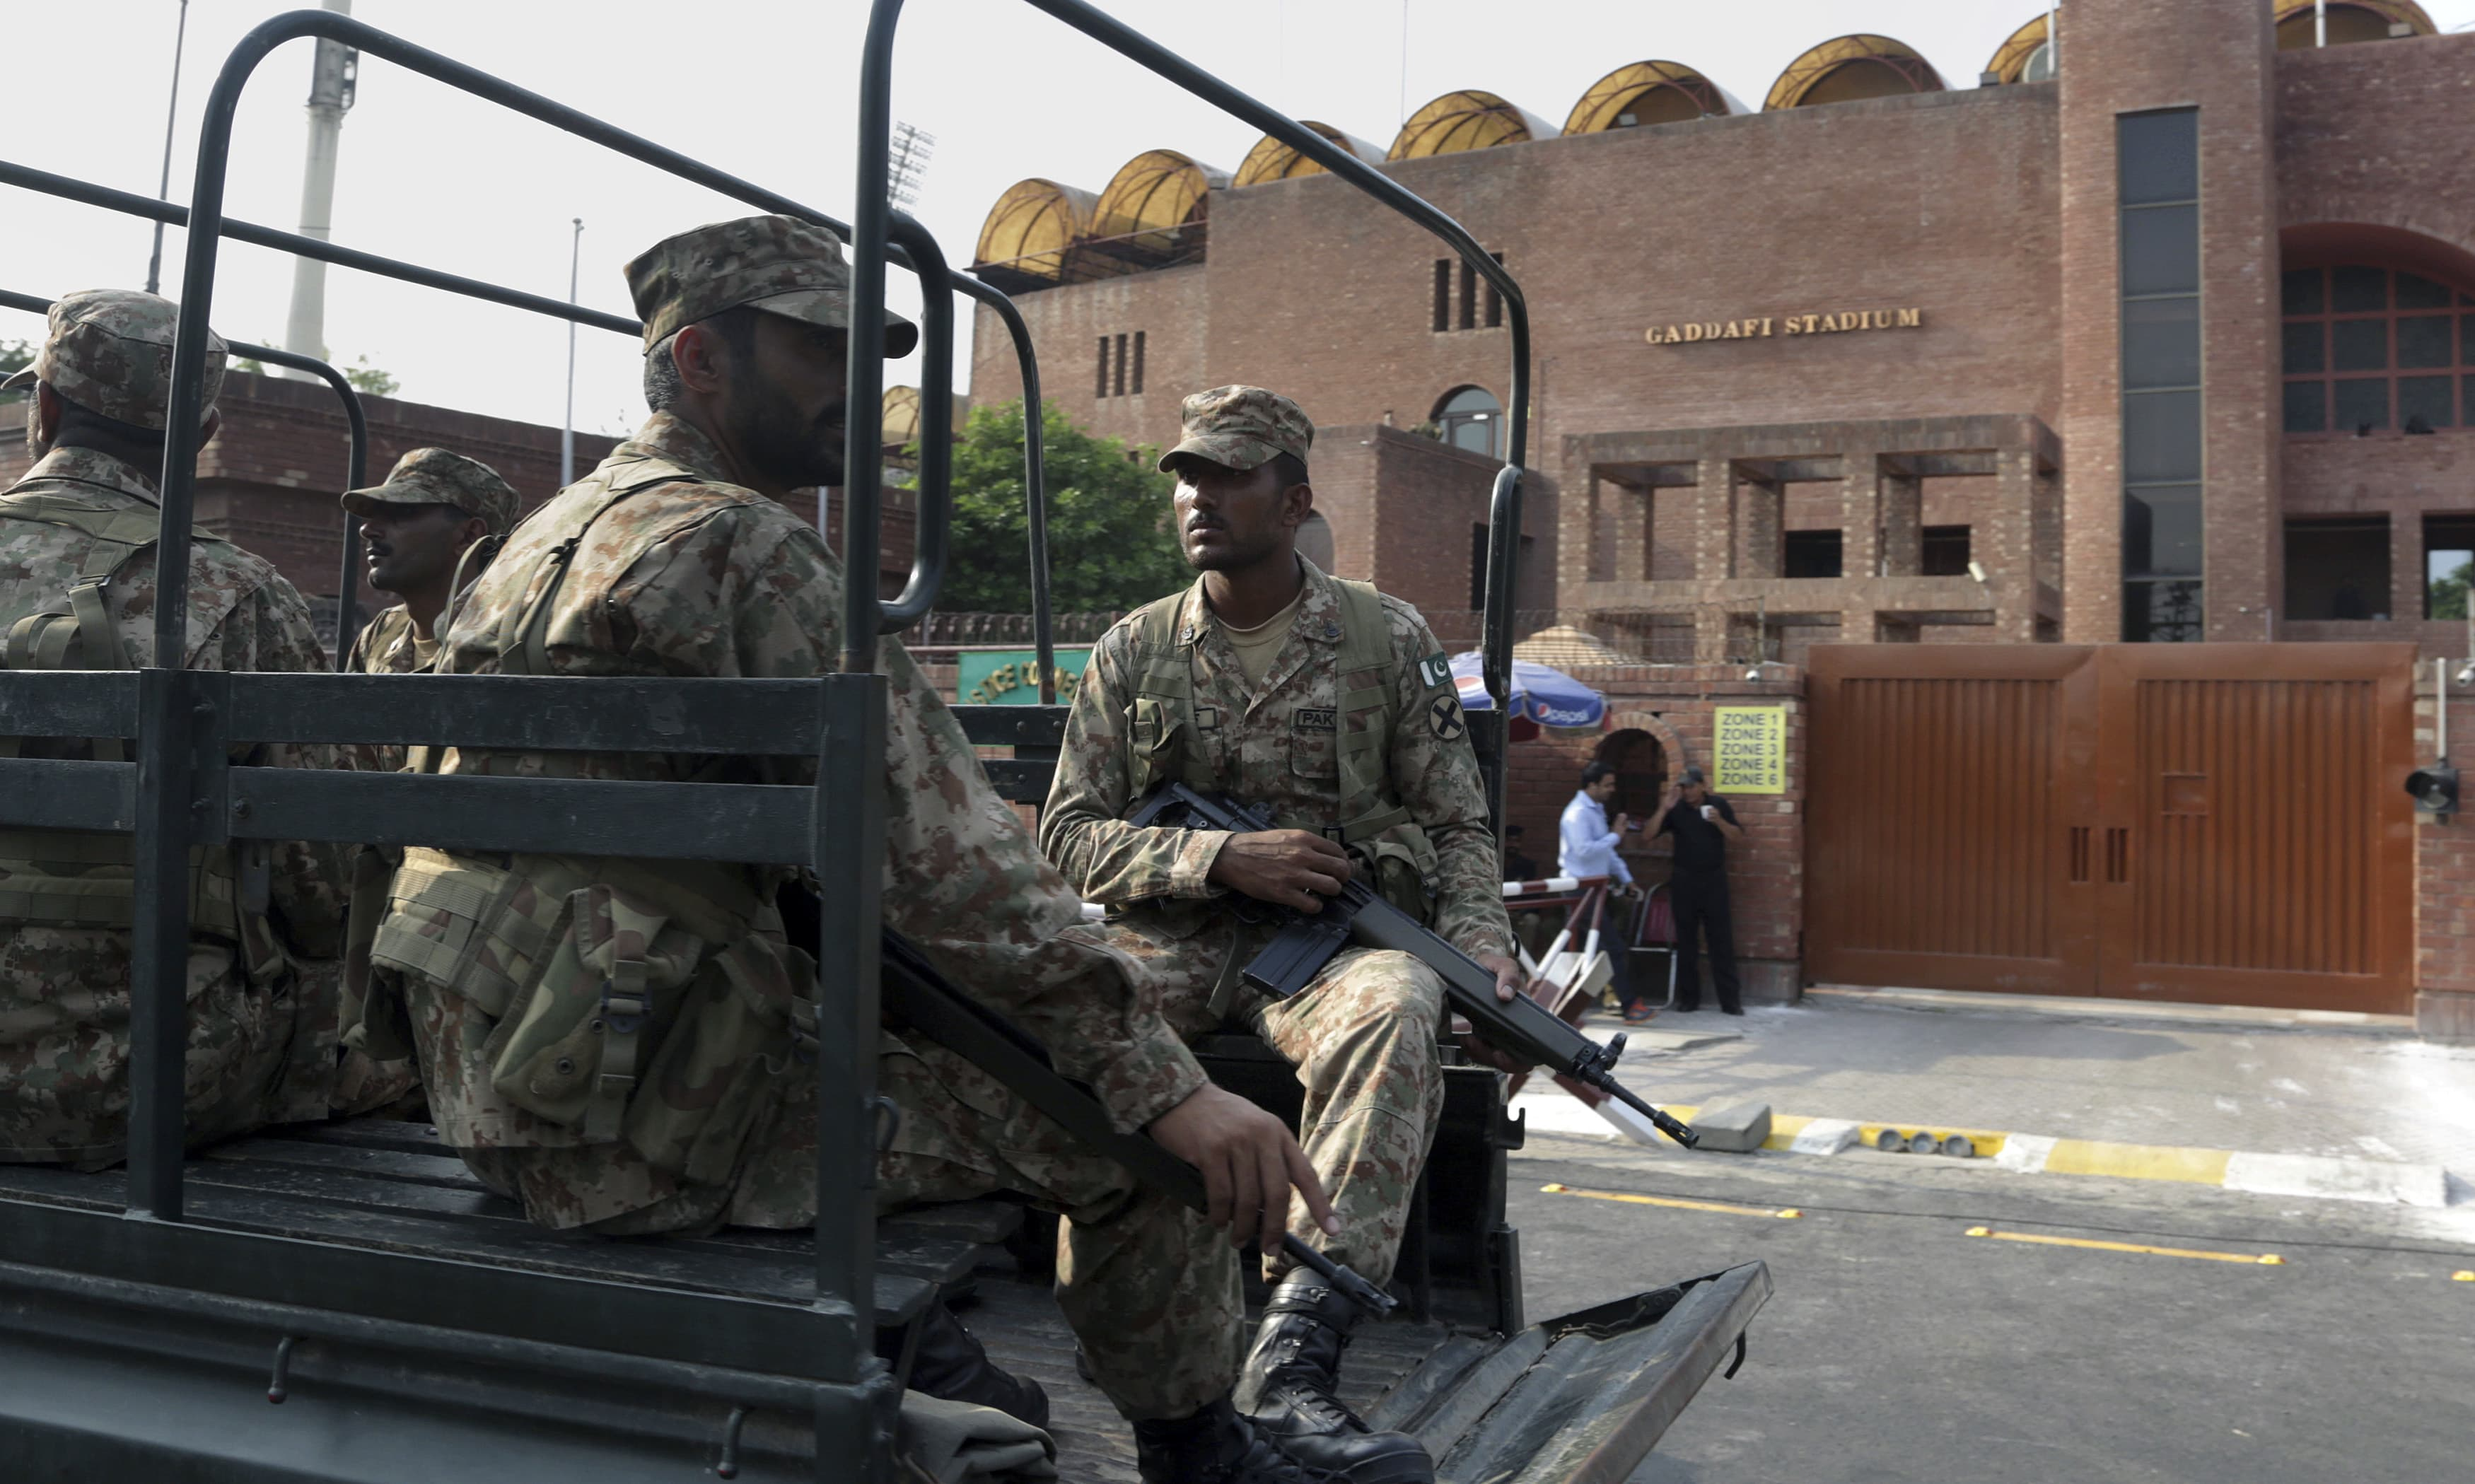 Troops stand guard outside the Gaddafi stadium. —AP